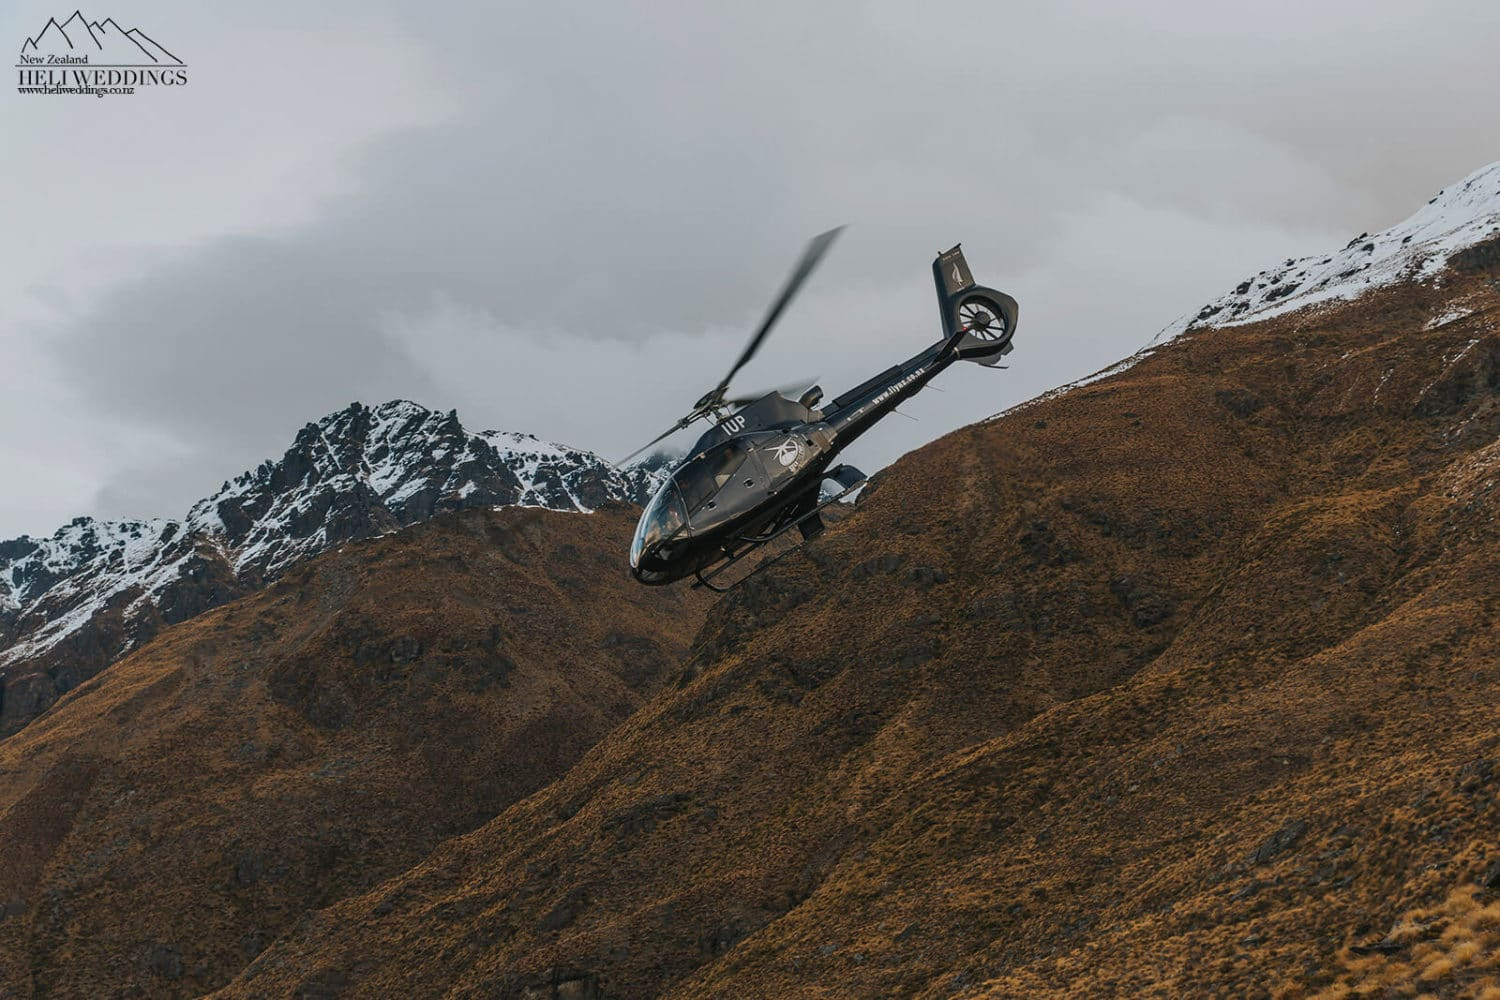 Over the top Eurocopter B4